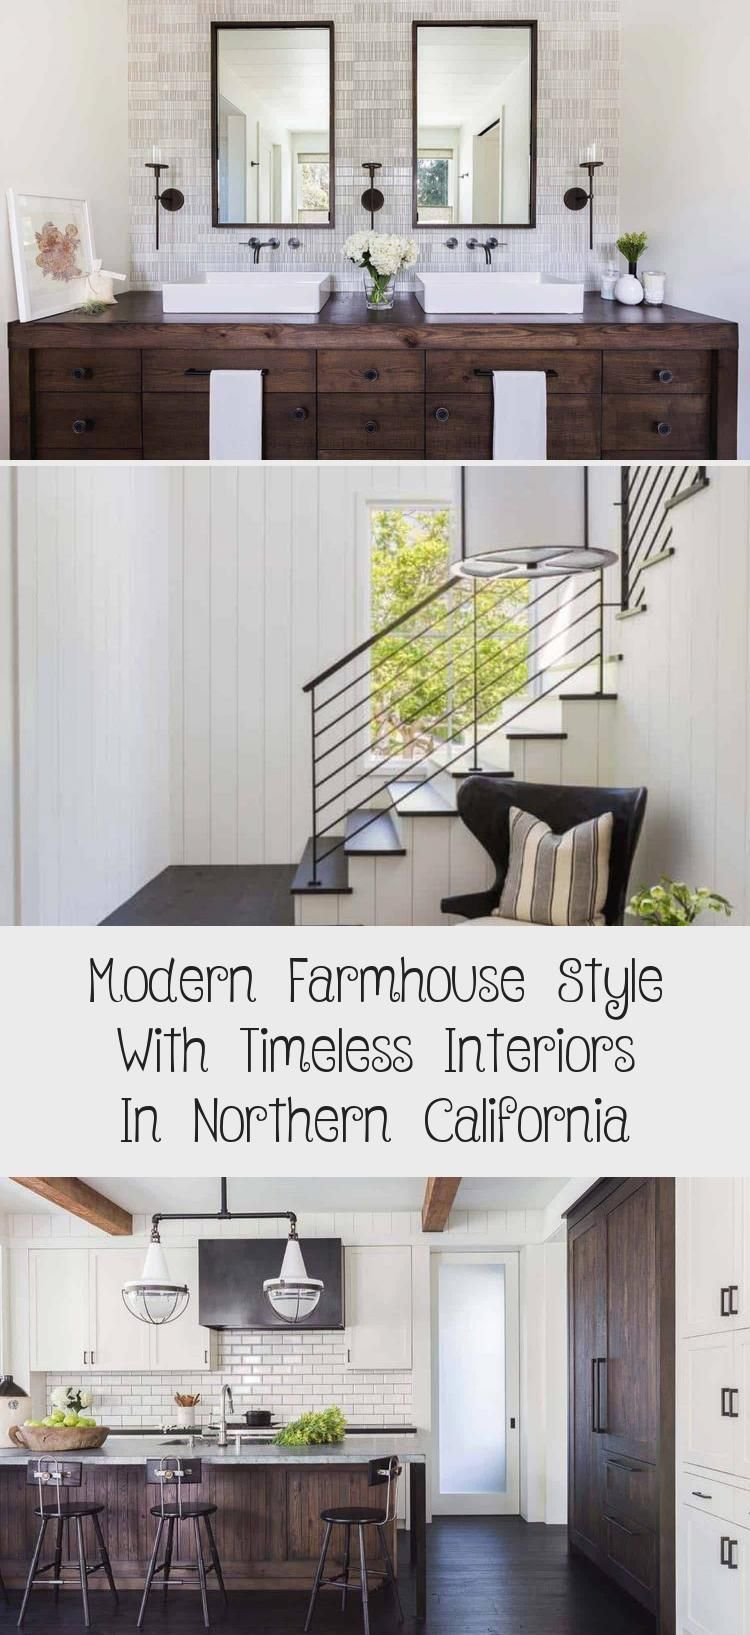 Modern farmhouse style with timeless interiors including white shiplap walls and...  Modern farmhouse style with timeless interiors including white shiplap walls and black metal stair  #Farmhouse #including #Interiors #Modern #shiplap #Style #Timeless #walls #White